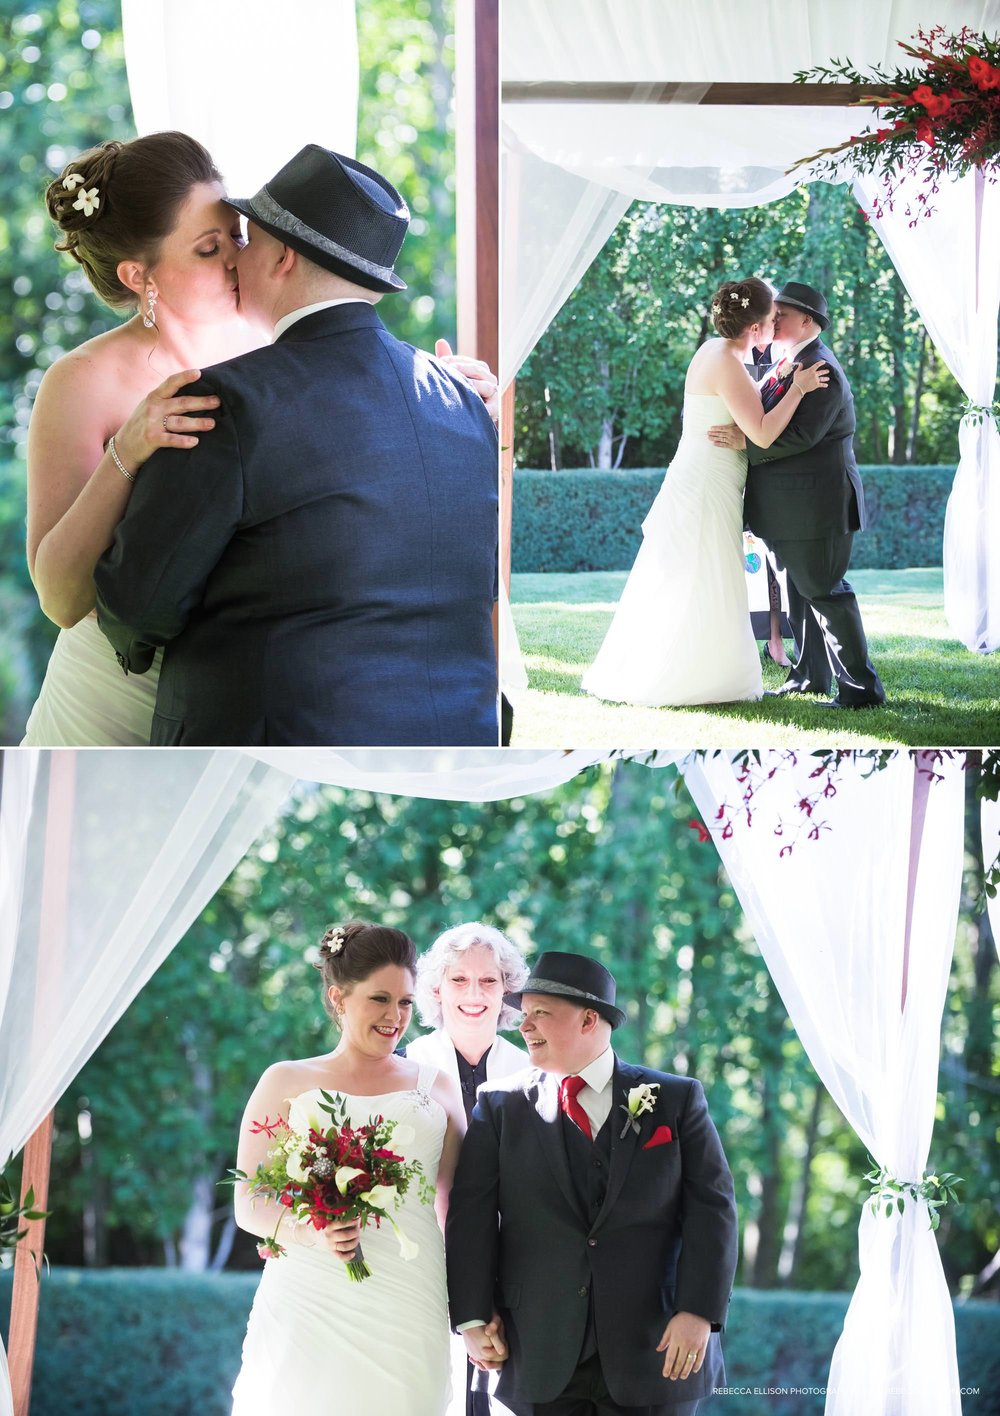 Same-sex-summer-wedding 22web.jpg